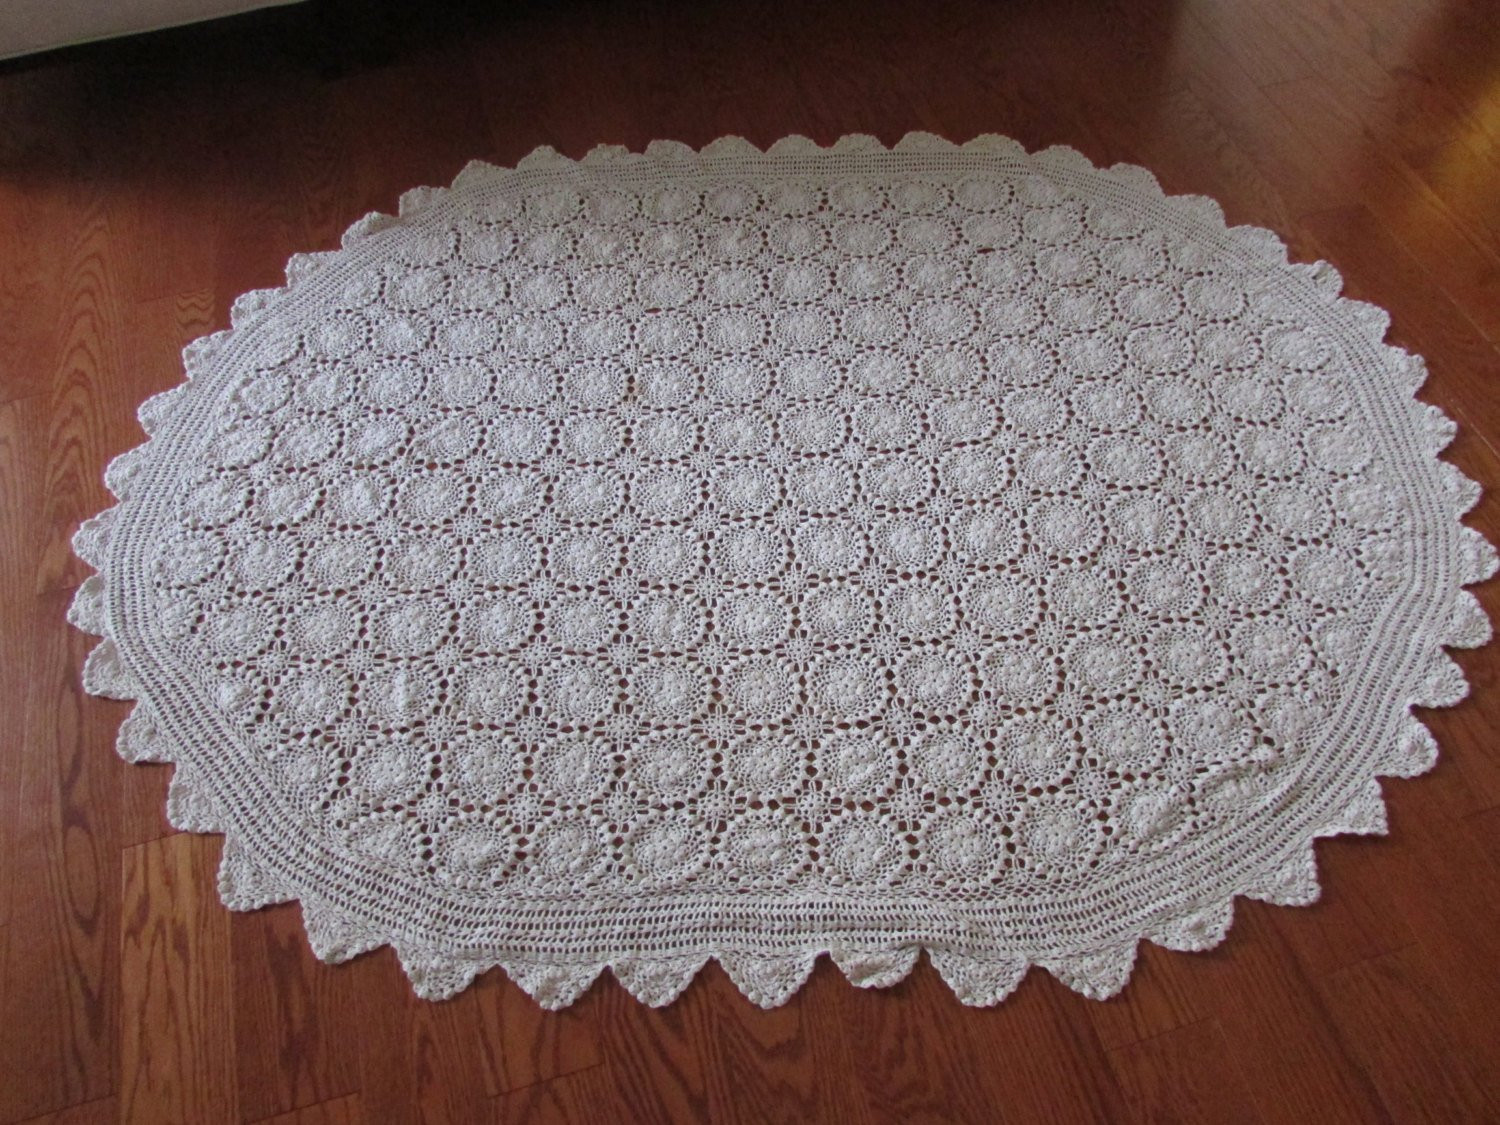 Crochet Lace Tablecloth Inspirational Vintage Oval Crocheted Lace Tablecloth Vintage Crochet Of Unique 41 Models Crochet Lace Tablecloth